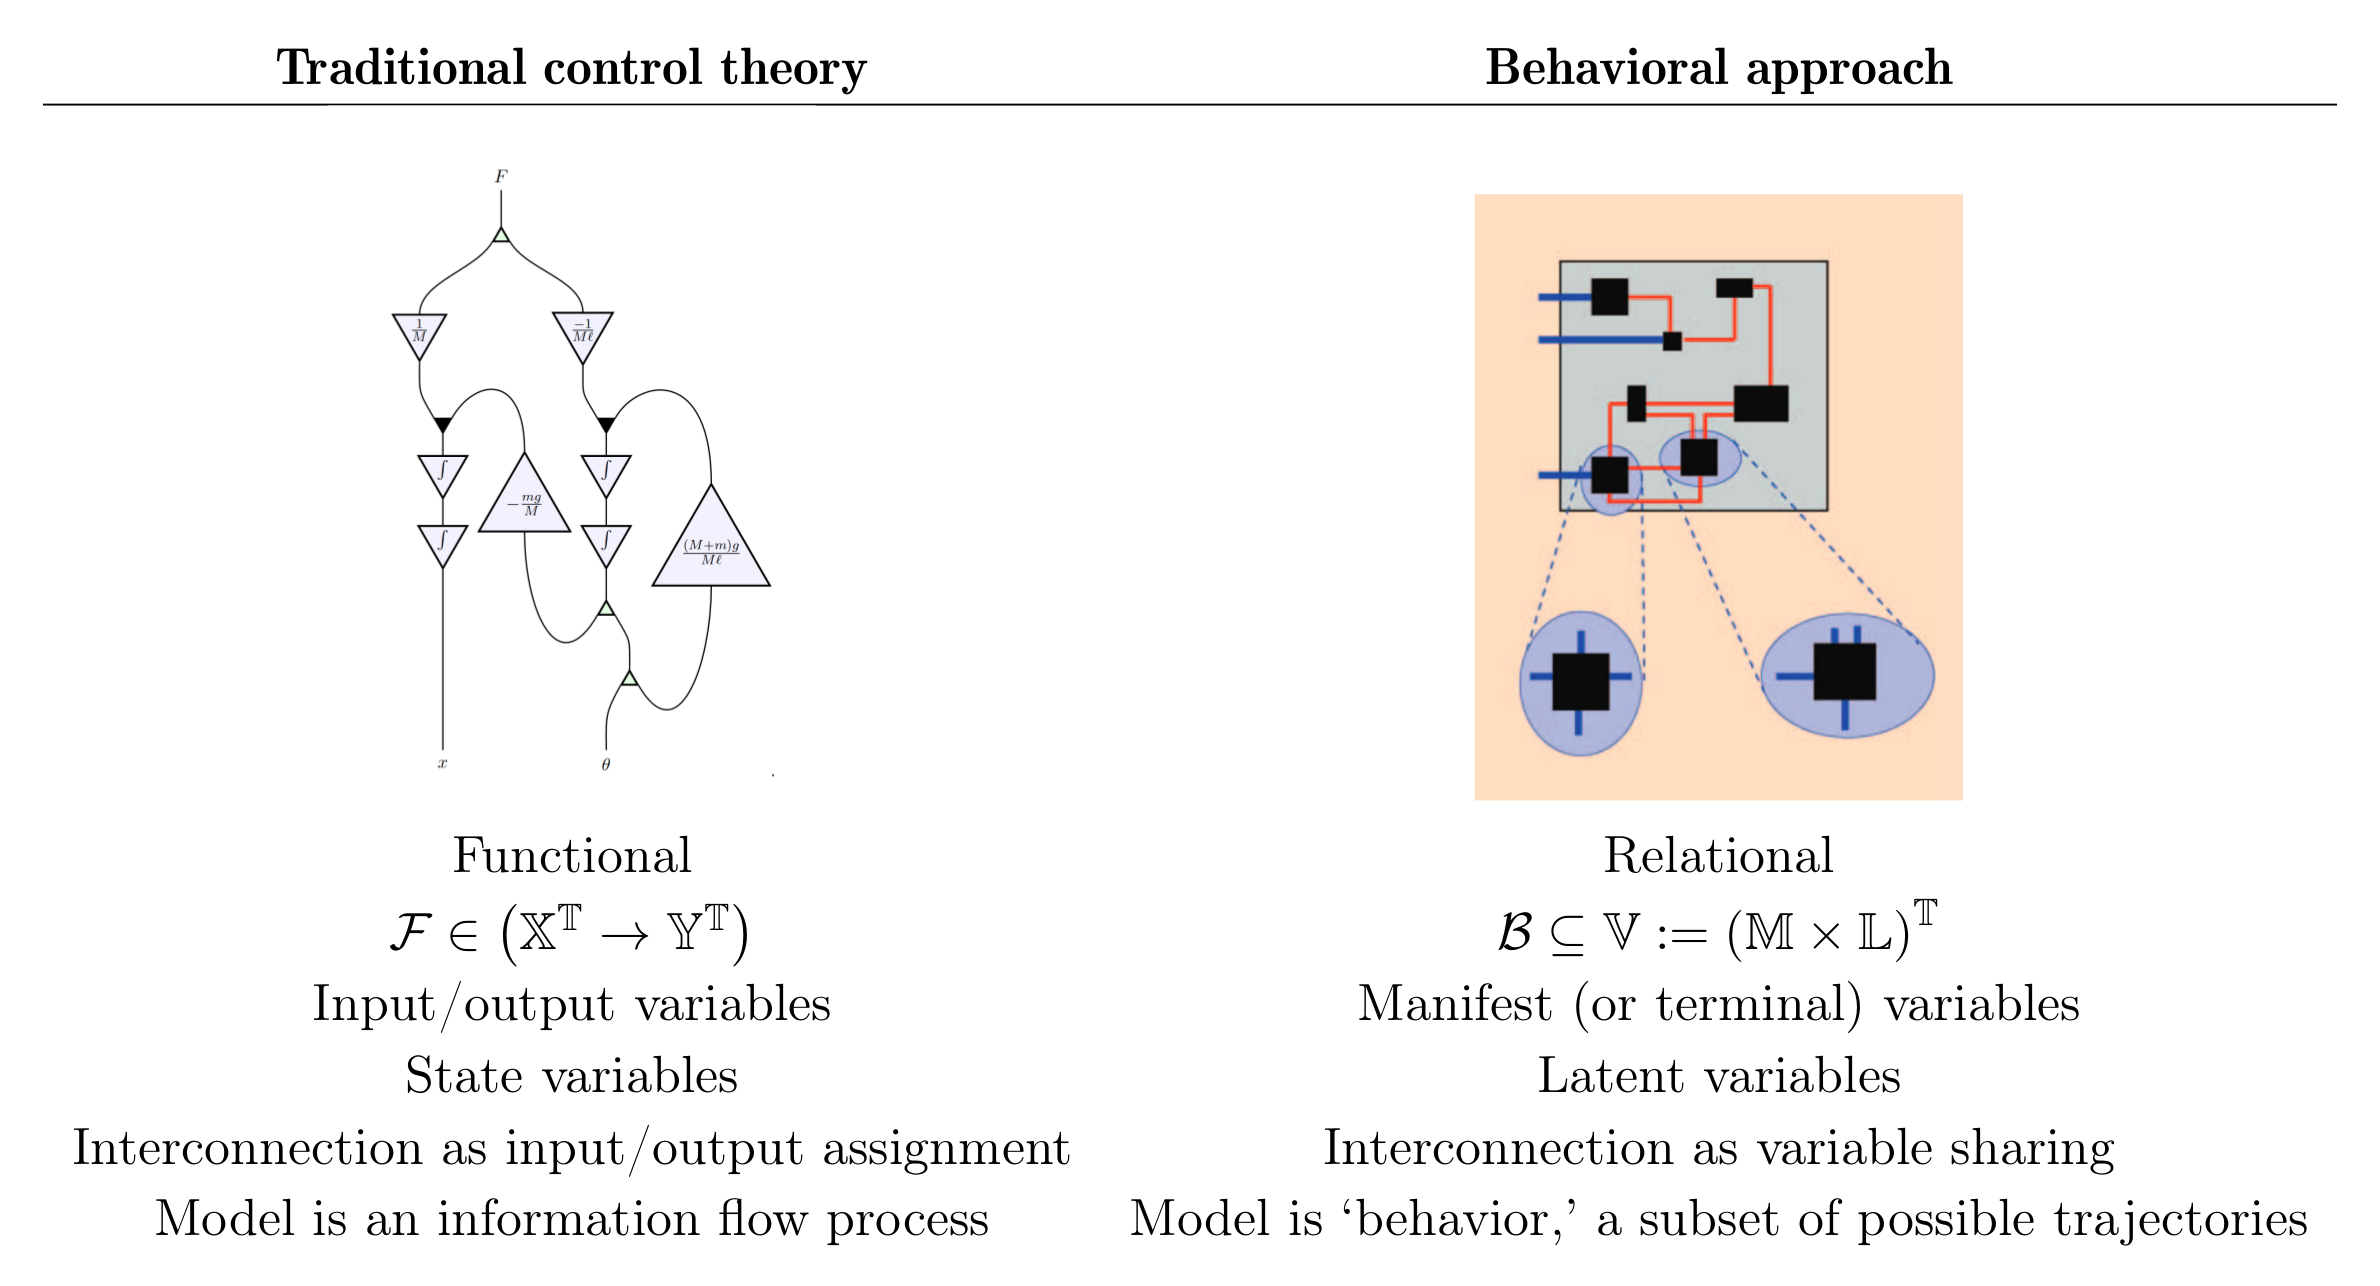 Image: Comparison table of traditional, functional approach vs Willems' relational approach